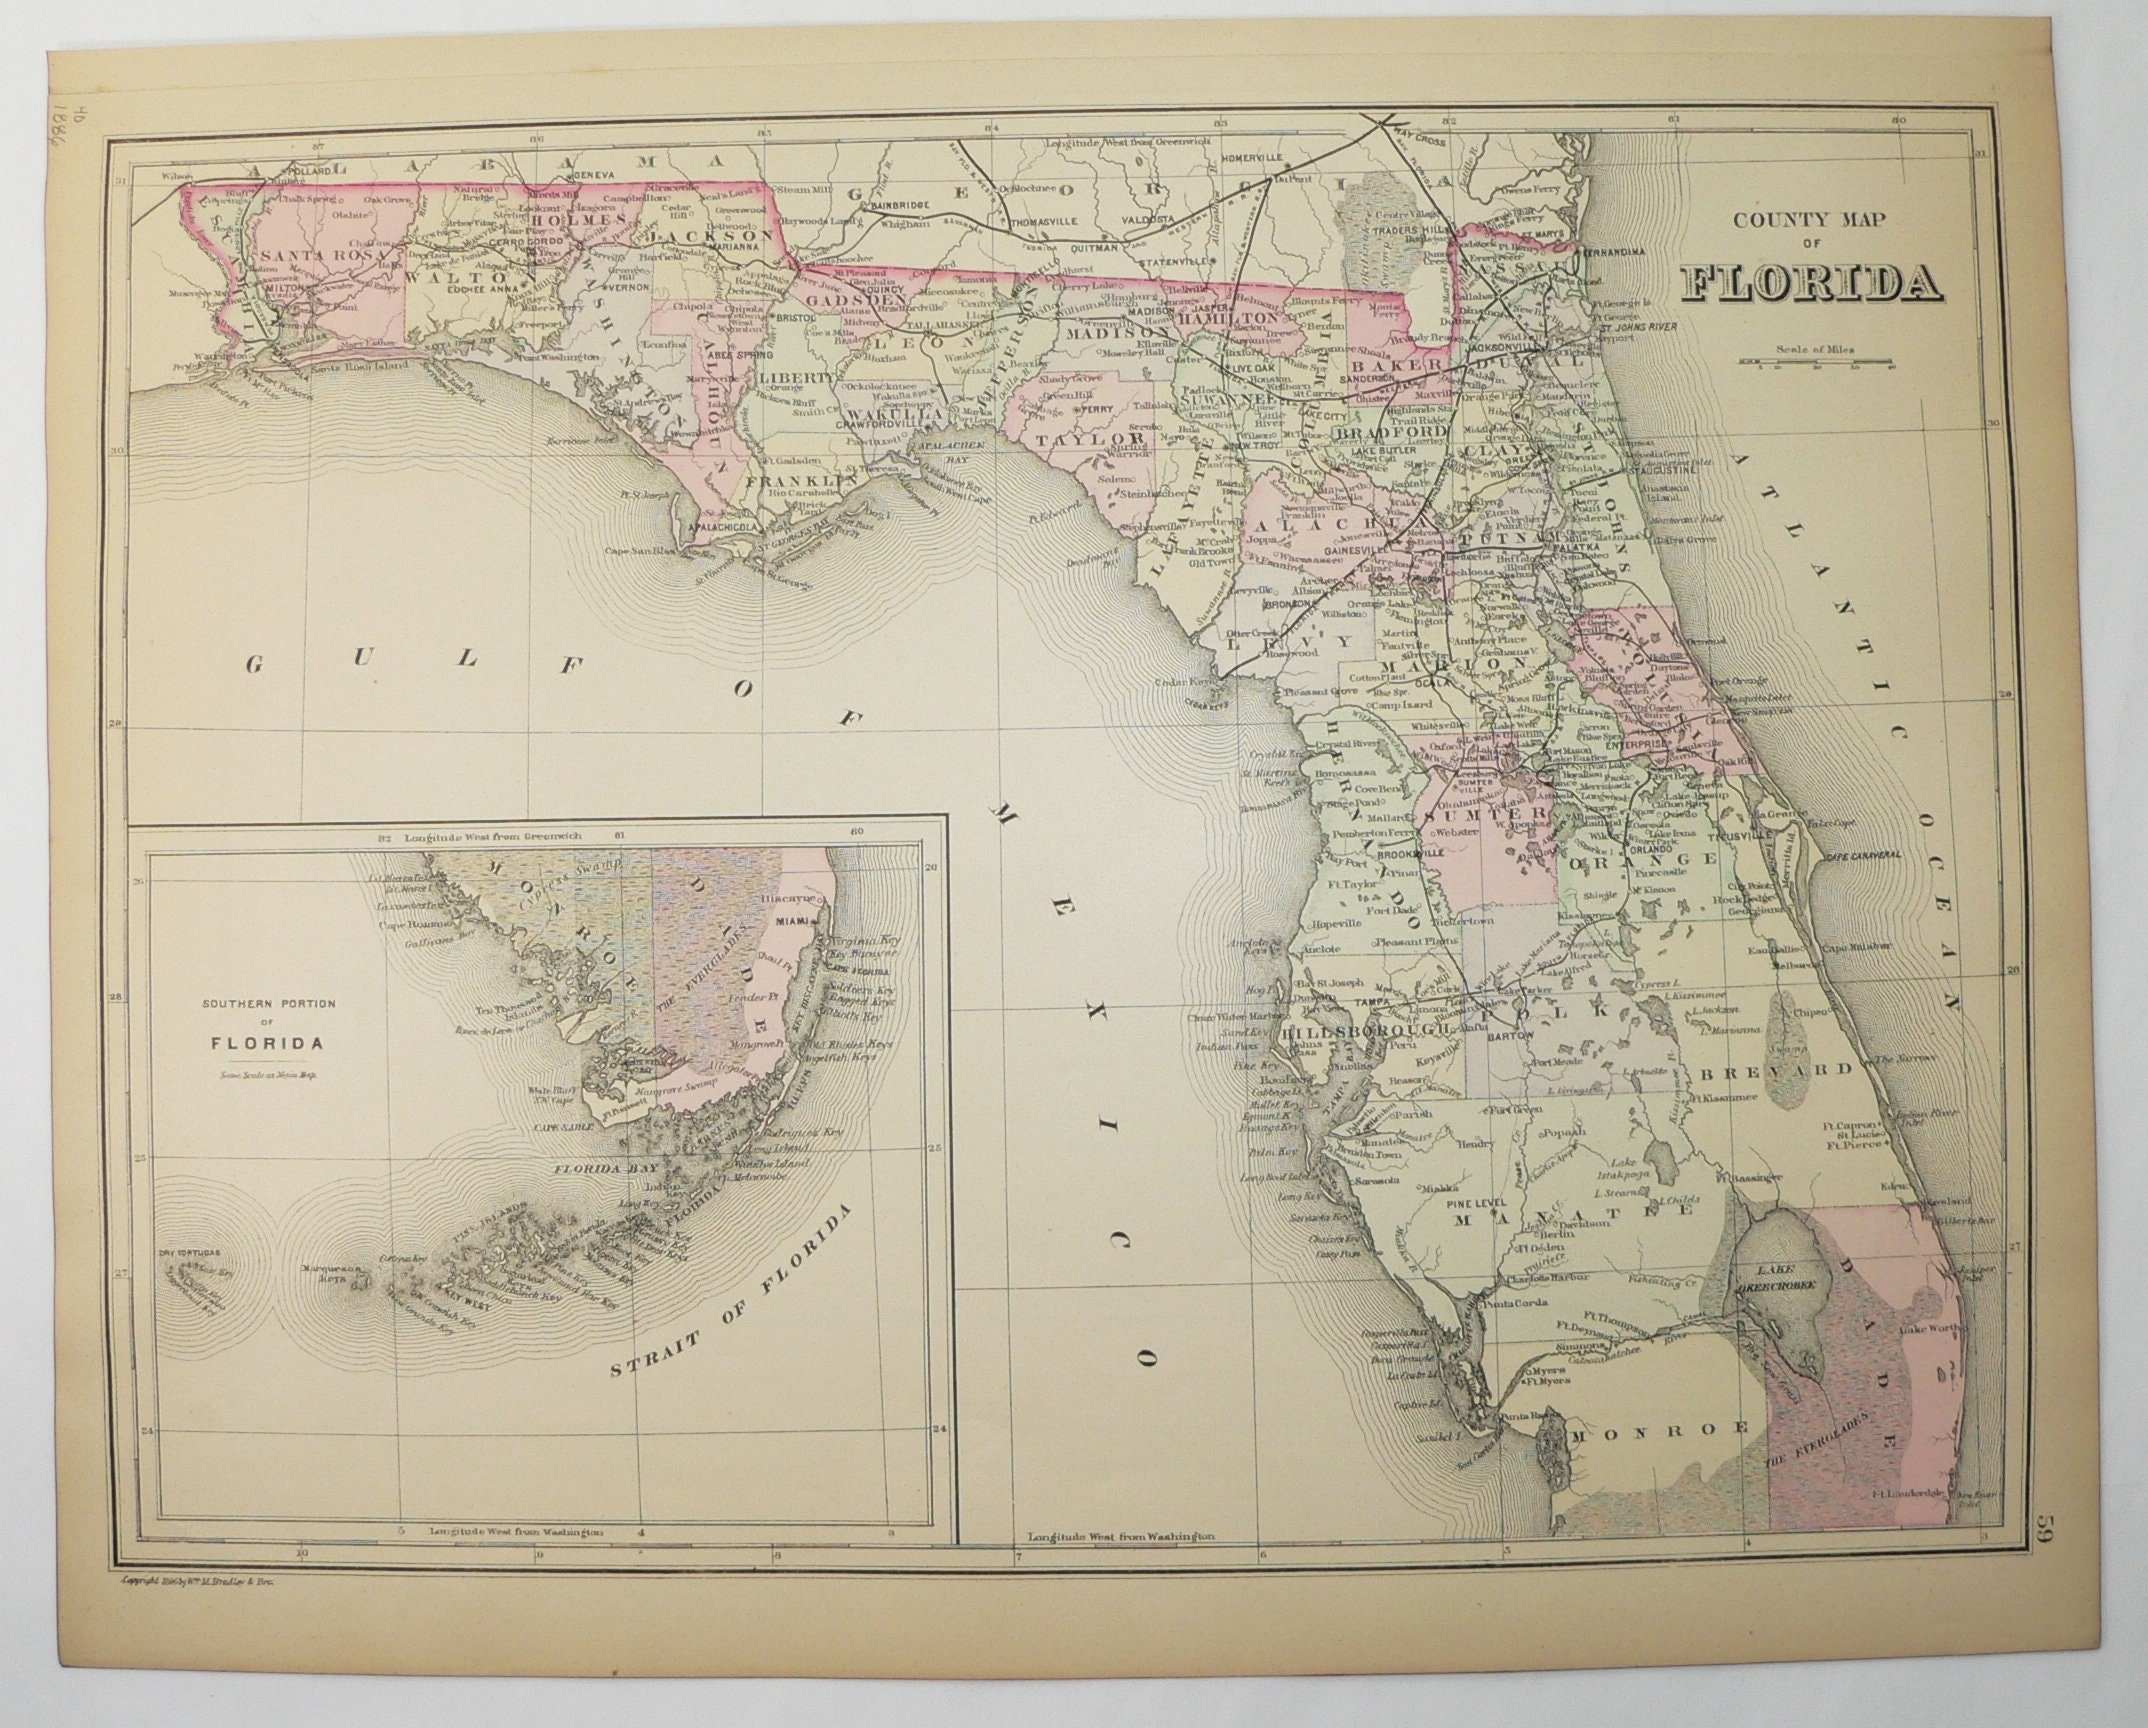 Antique Map Of Florida.1886 Real Antique Map Of Florida By Bradley With Florida Keys Etsy